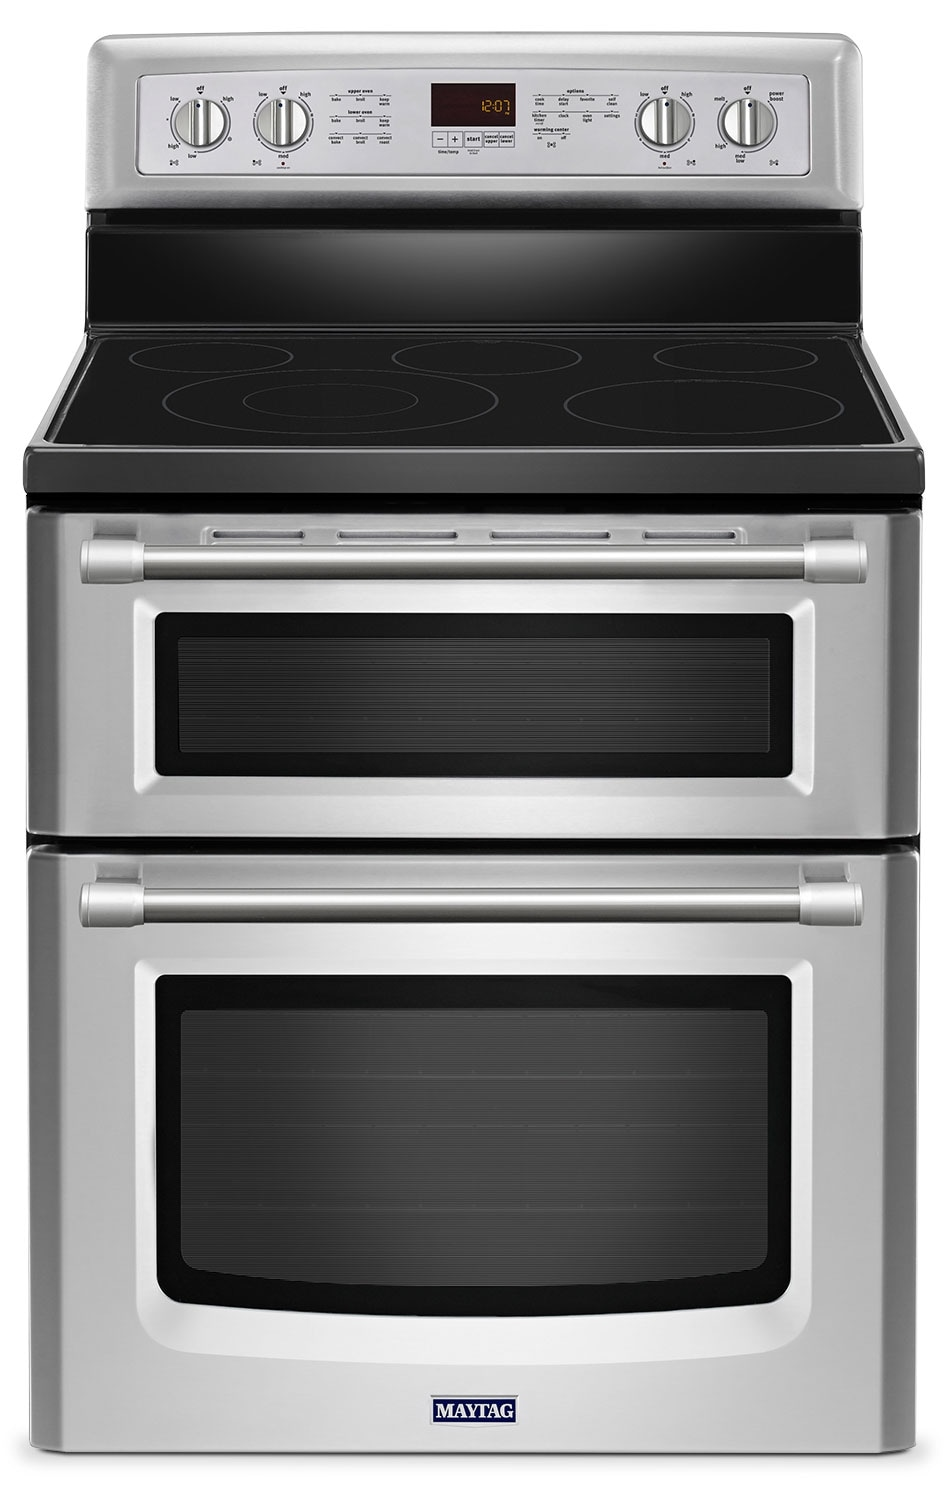 Cooking Products - Maytag® Gemini® 6.7 Cu. Ft. Double Oven Electric Range – Stainless Steel